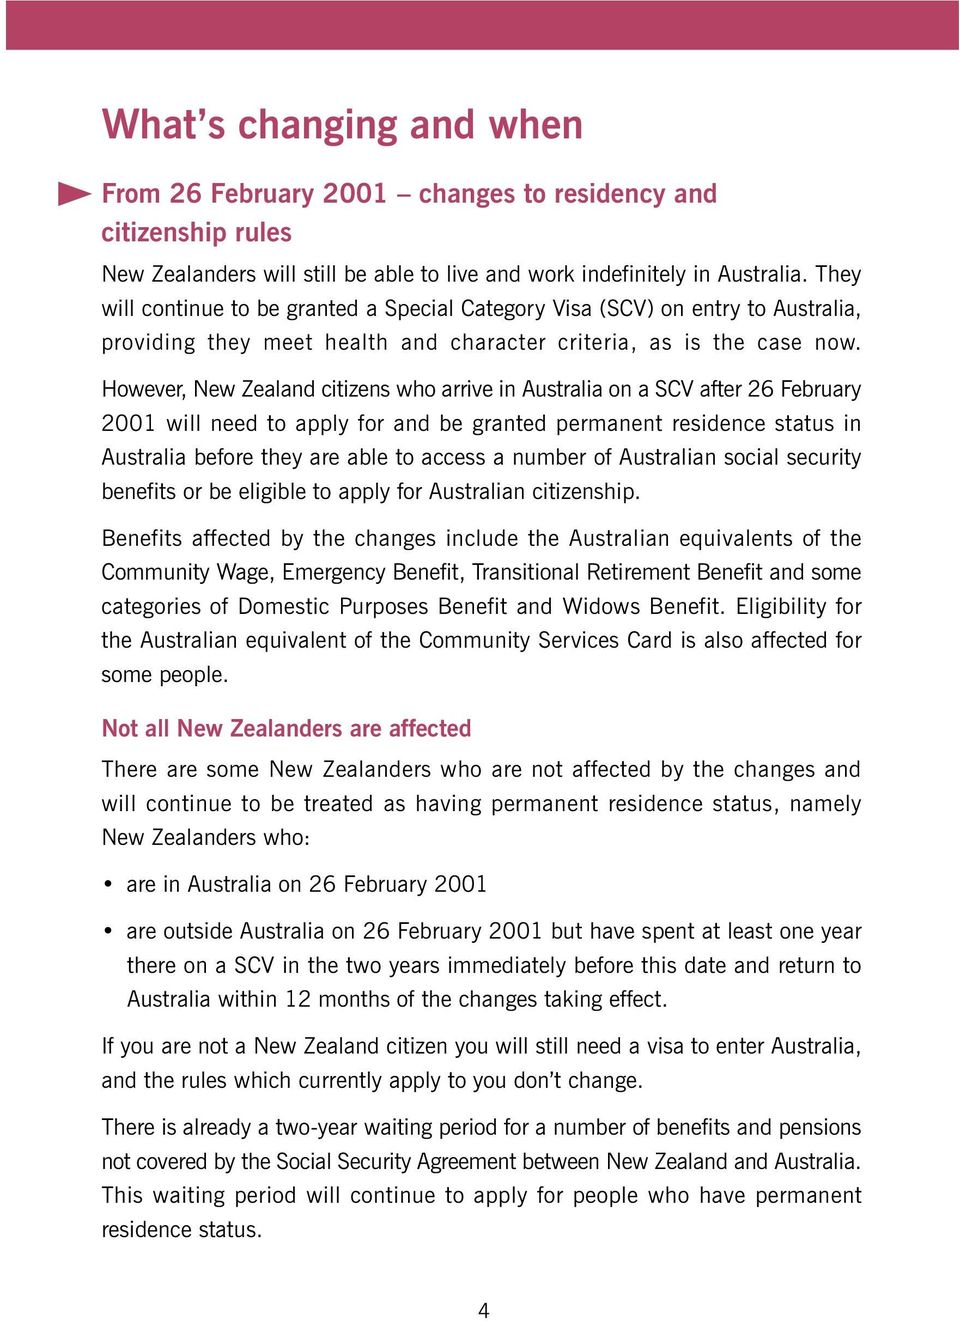 However, New Zealand citizens who arrive in Australia on a SCV after 26 February 2001 will need to apply for and be granted permanent residence status in Australia before they are able to access a